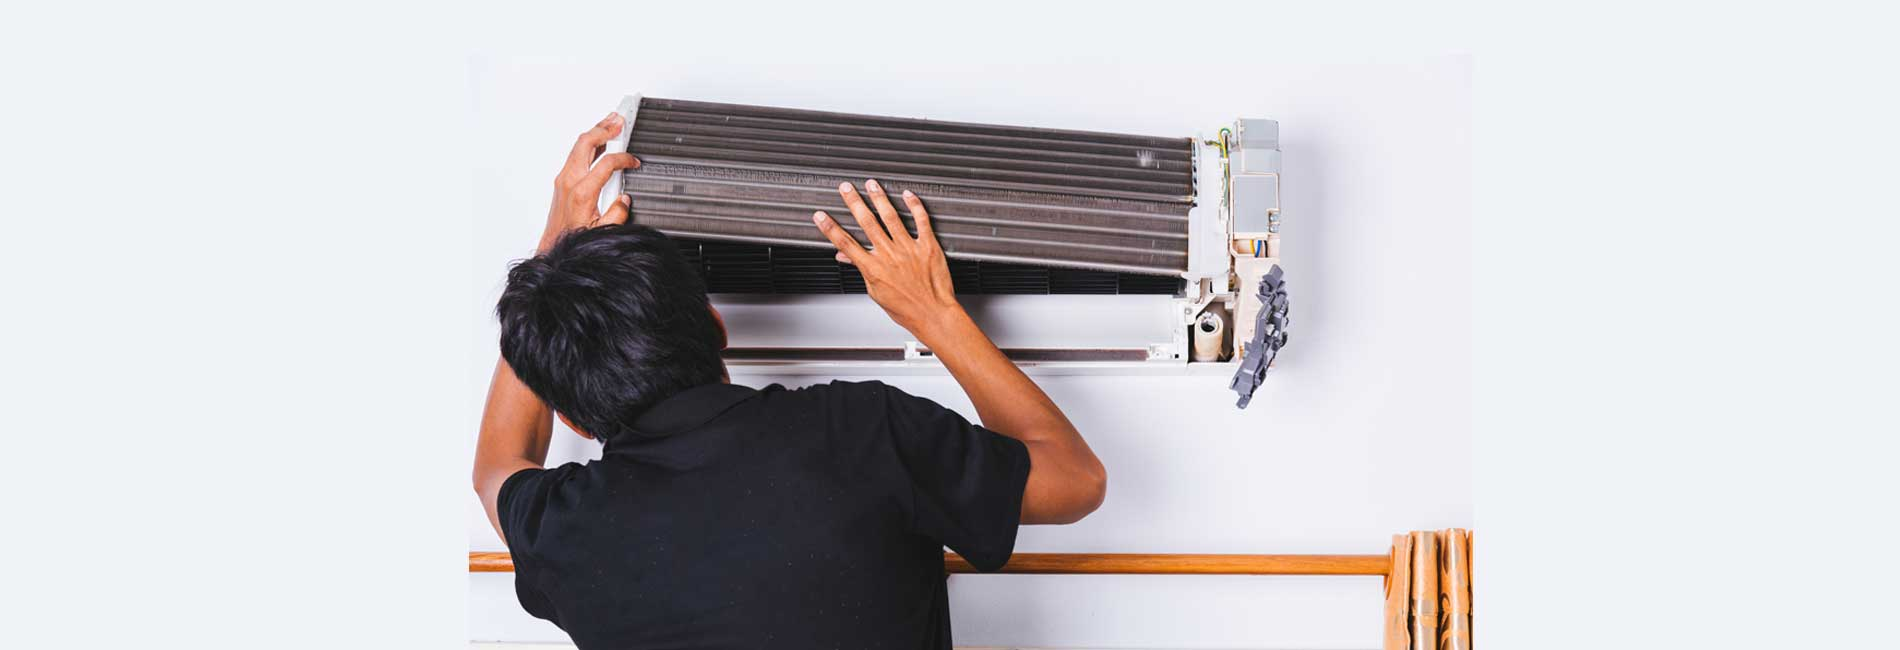 Whirlpool AC Installation in thandalam